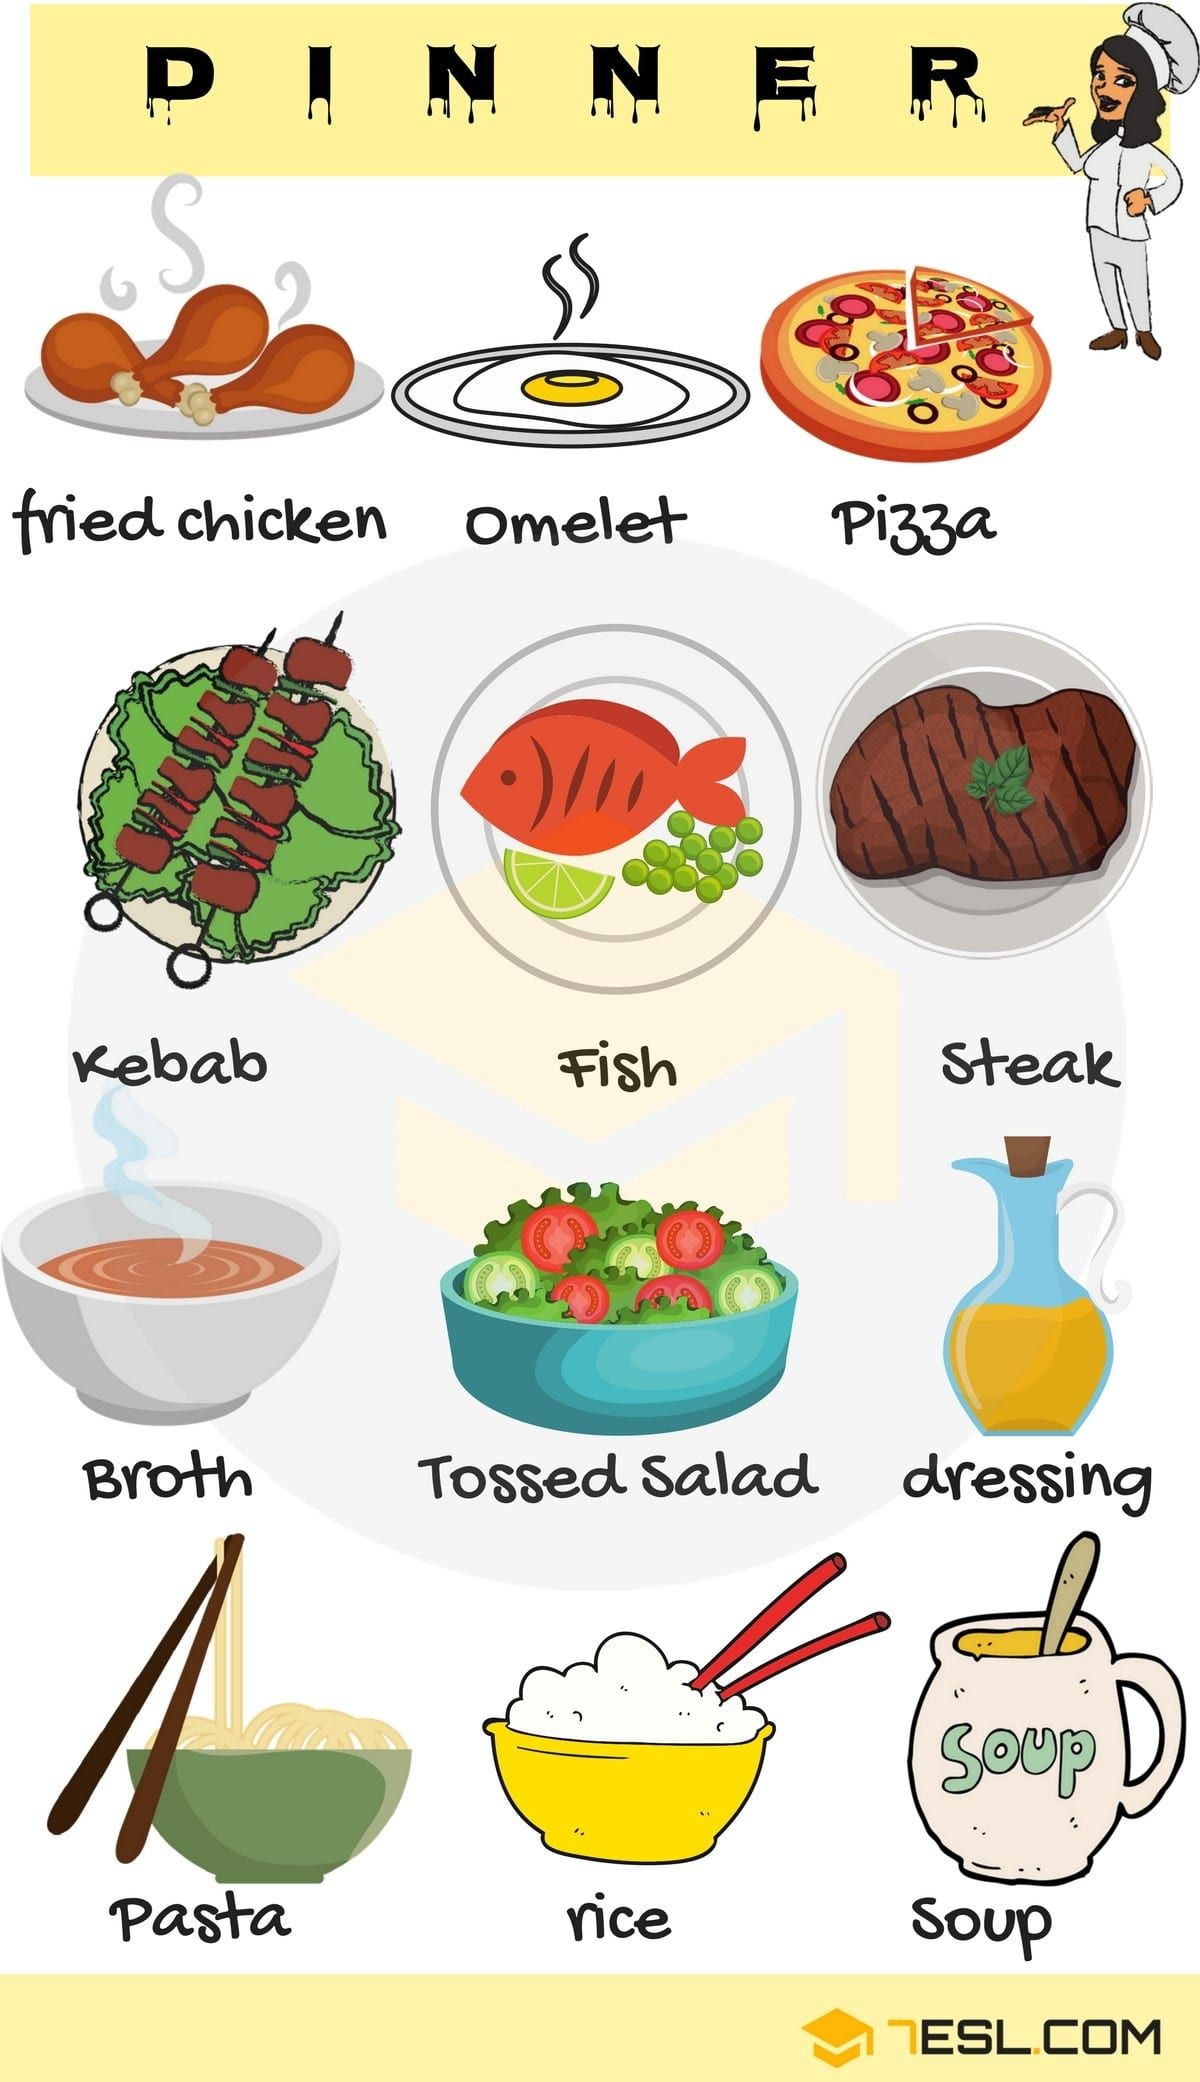 Dinner vocabulary in english english dinners and learning dinner vocabulary in english list of dinner foods forumfinder Choice Image